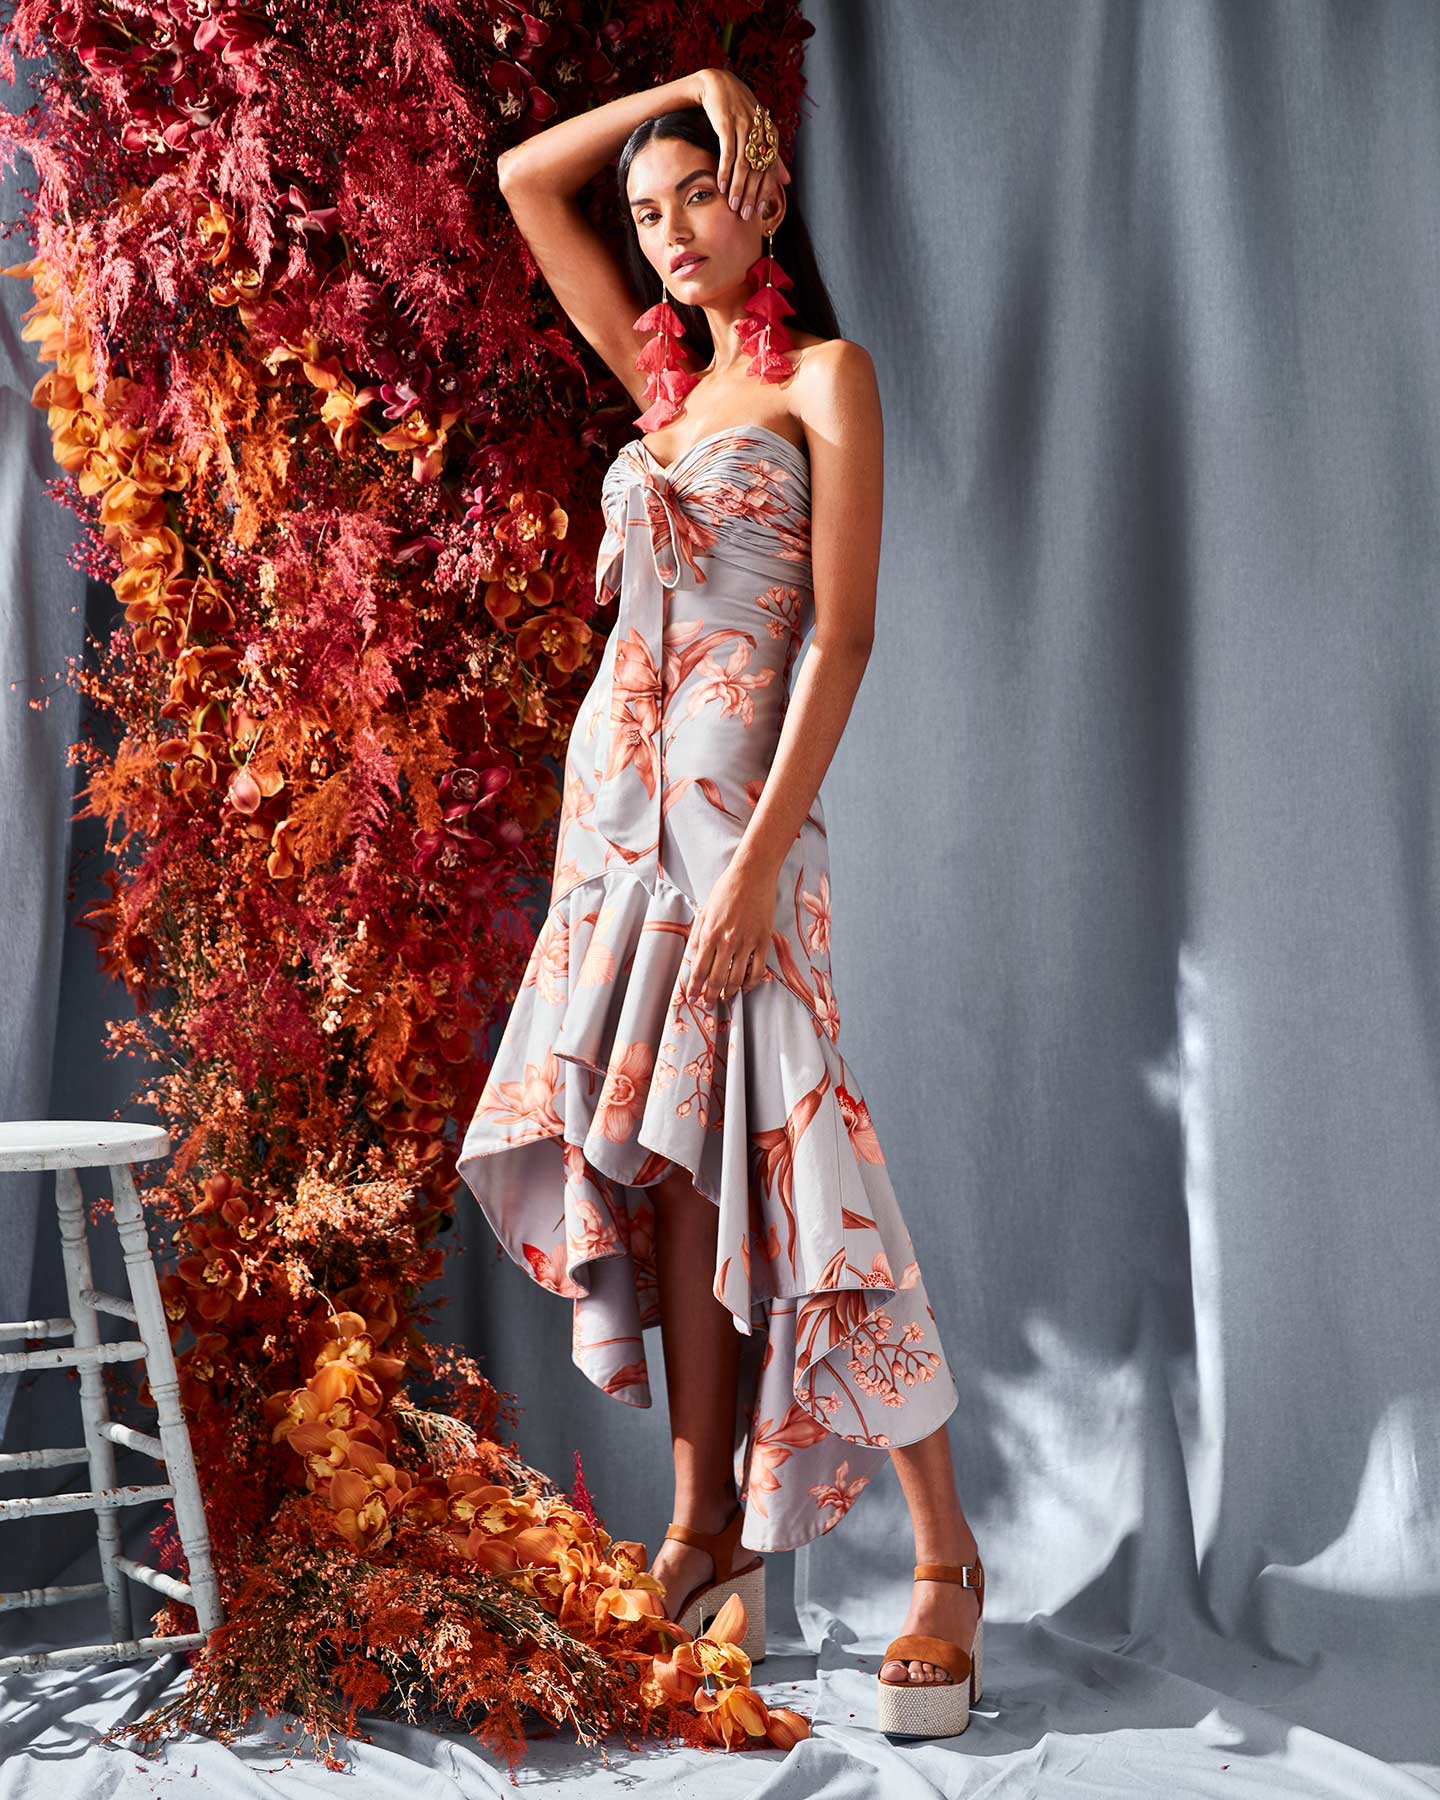 Fashion photography featuring a large floral arrangement and model.